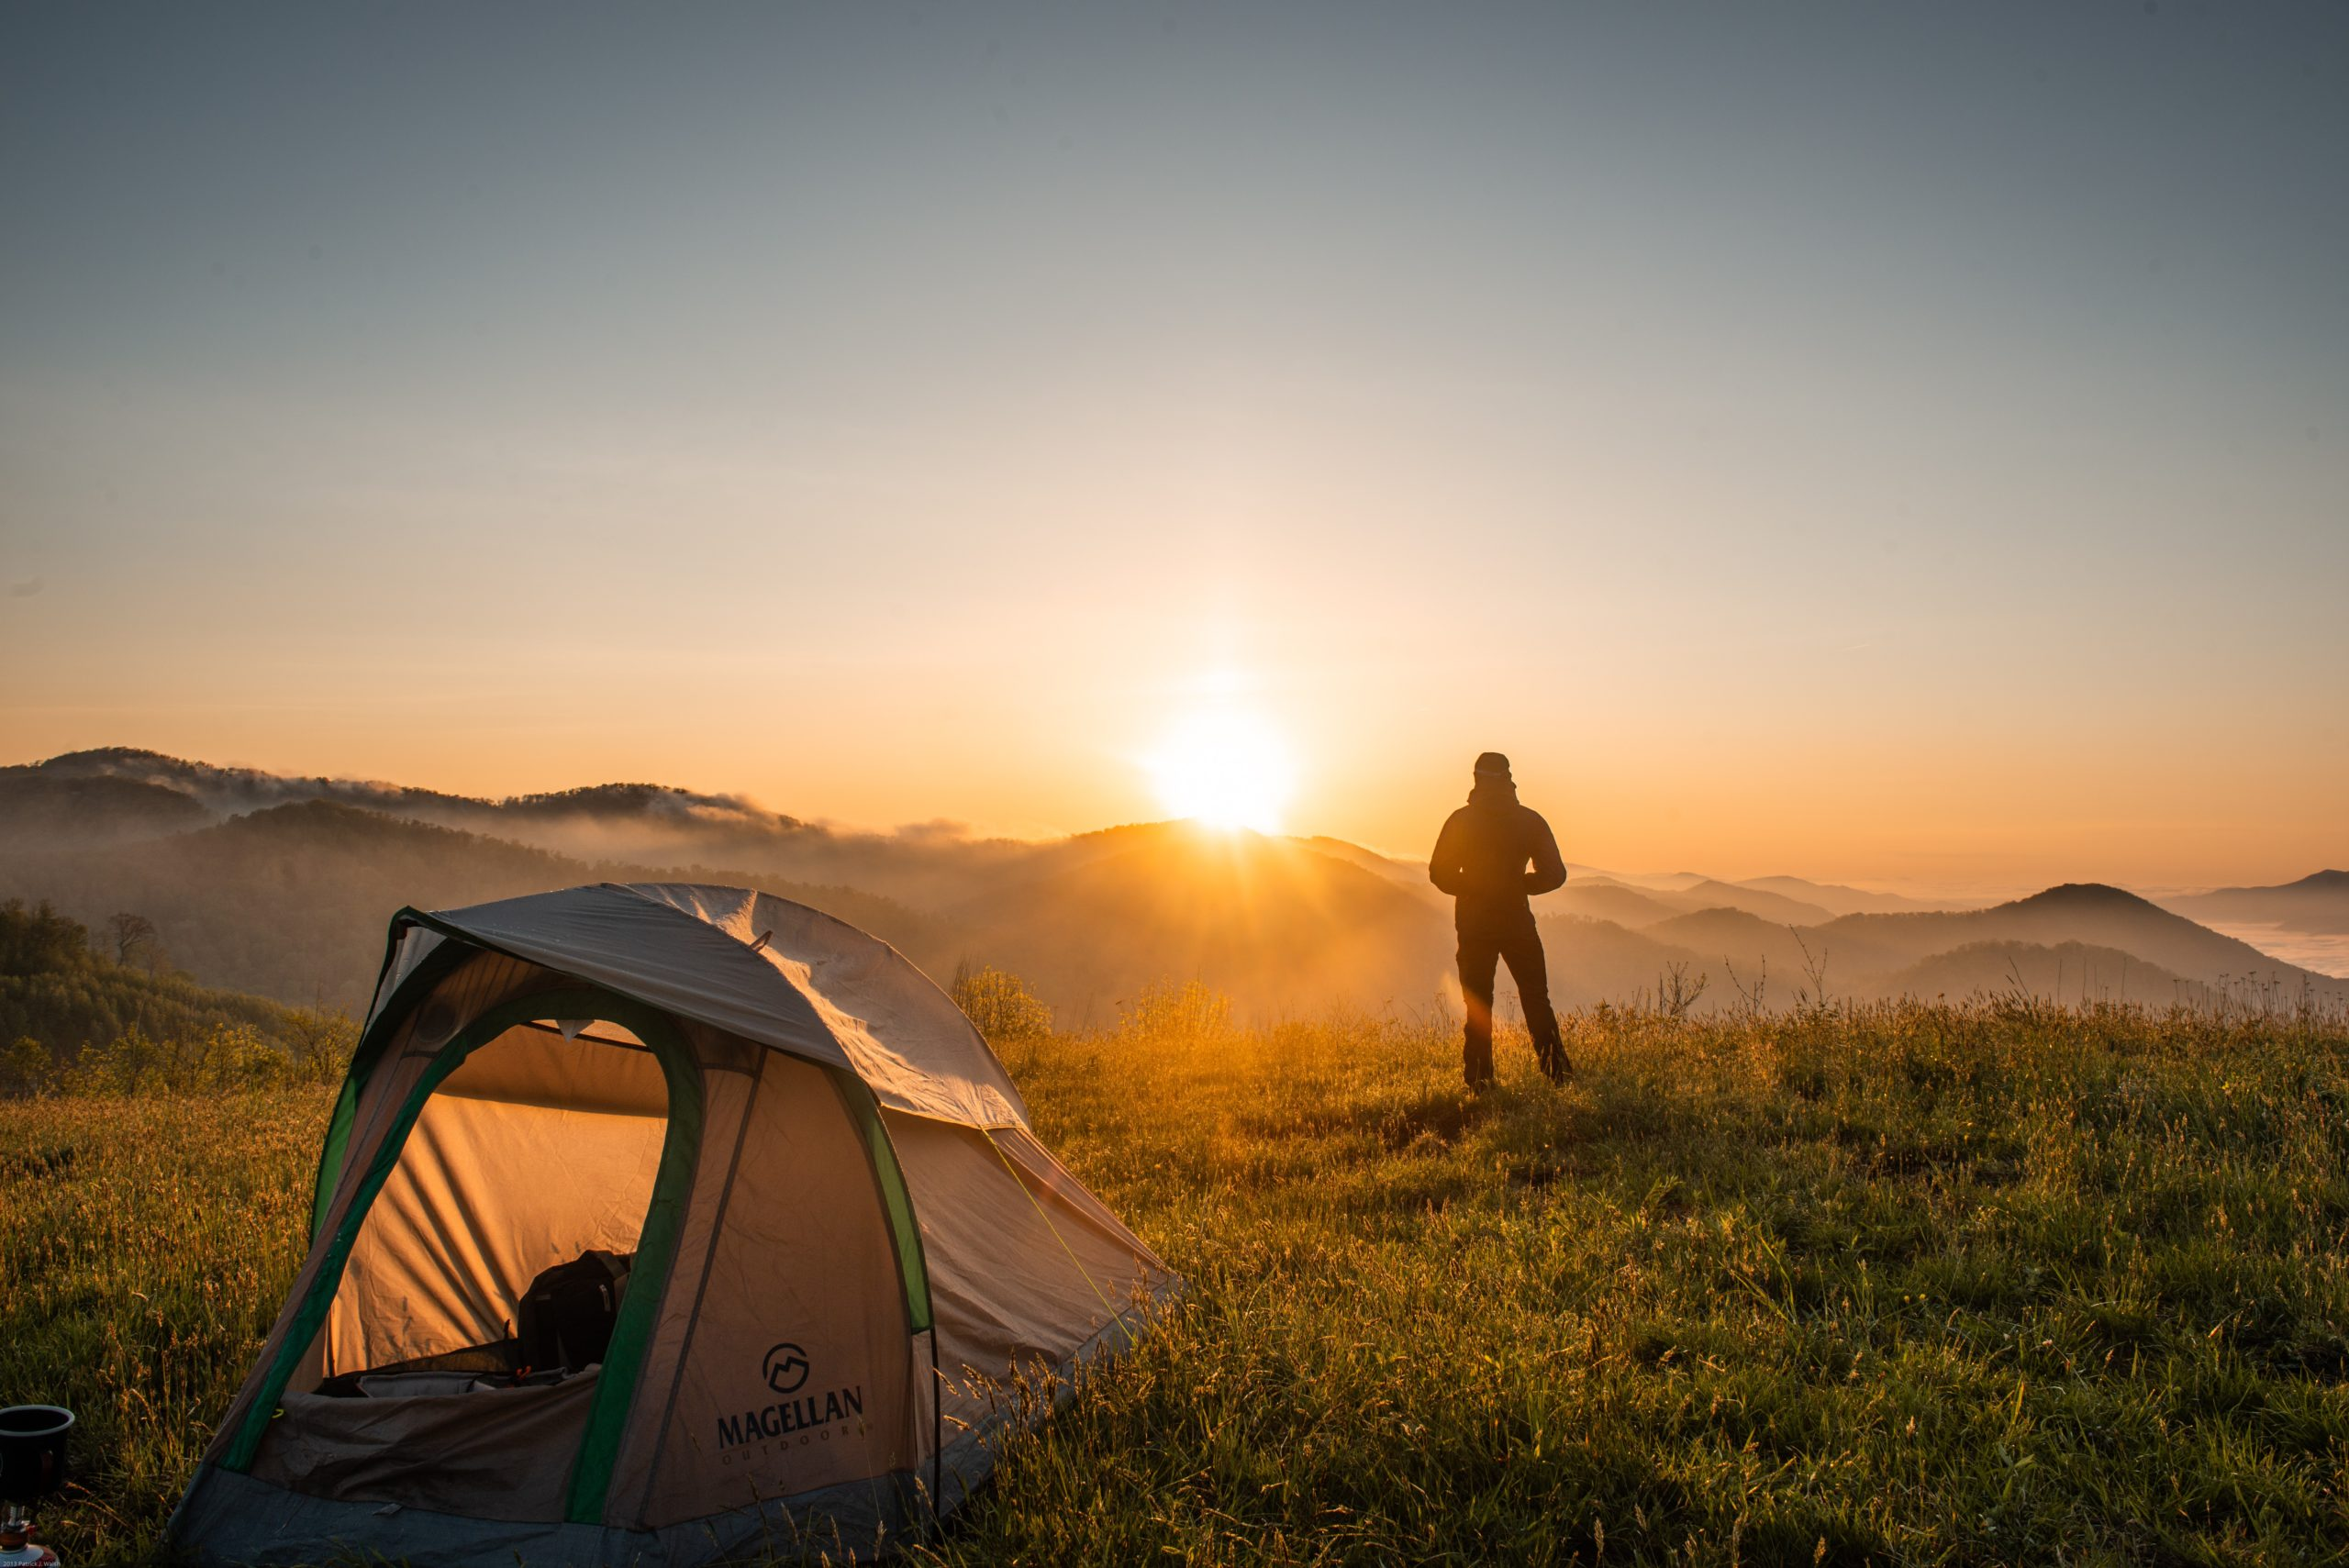 A man standing infront of his tent